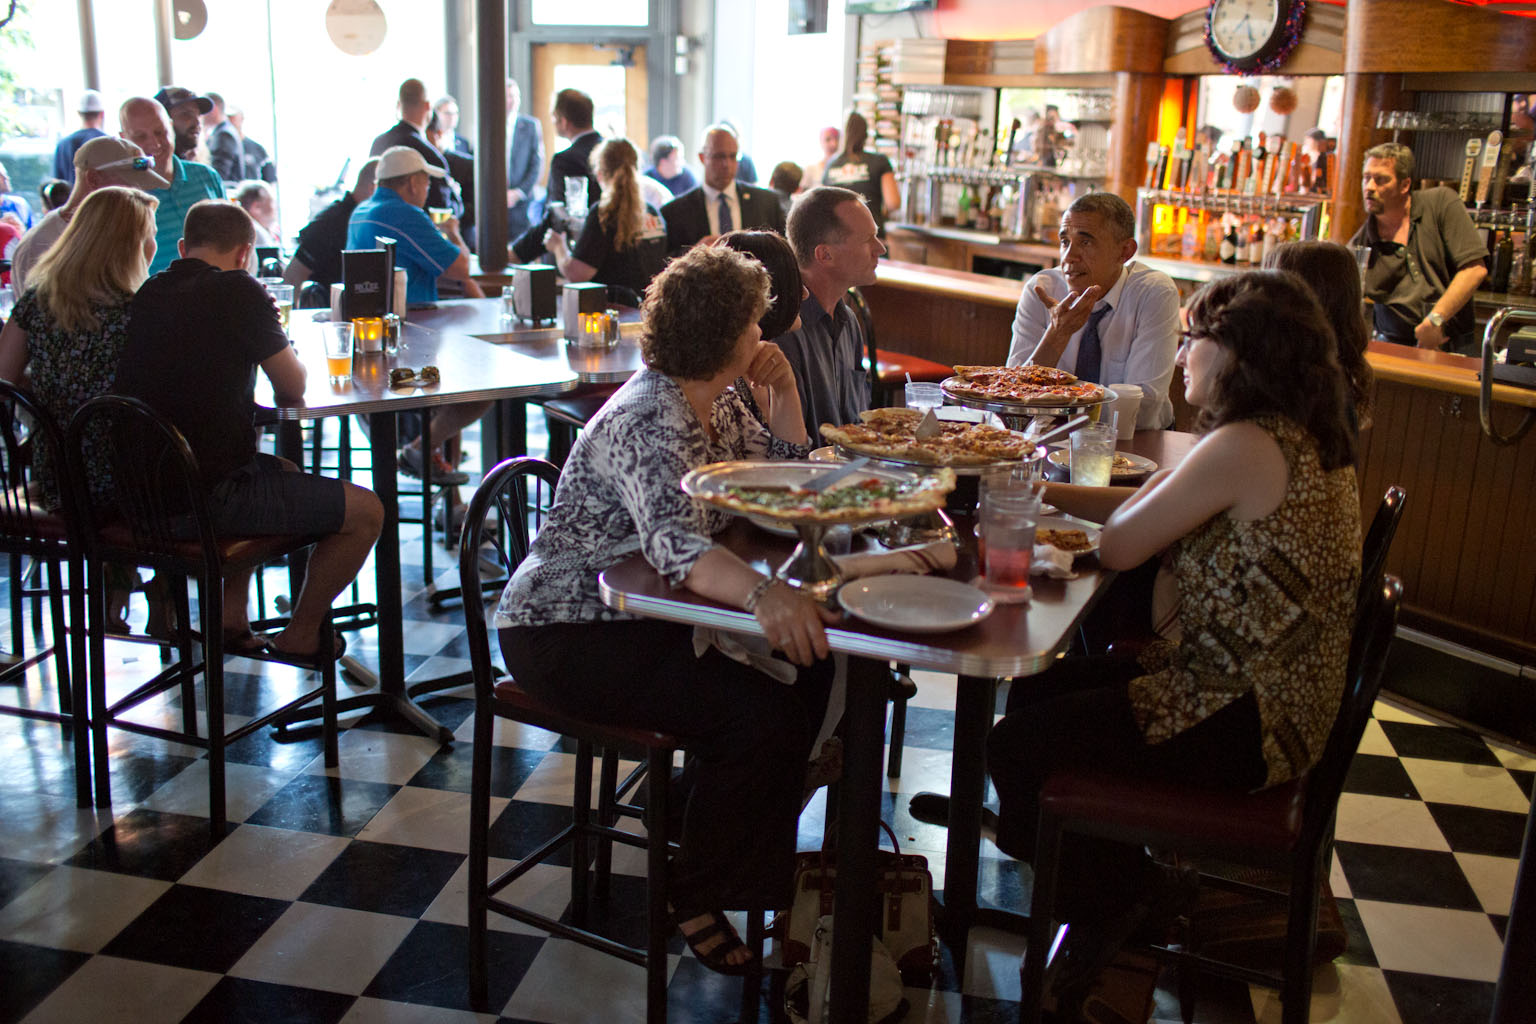 President Barack Obama has a pizza dinner with local residents who had written him letters, in Denver, Colorado, July 8, 2014.